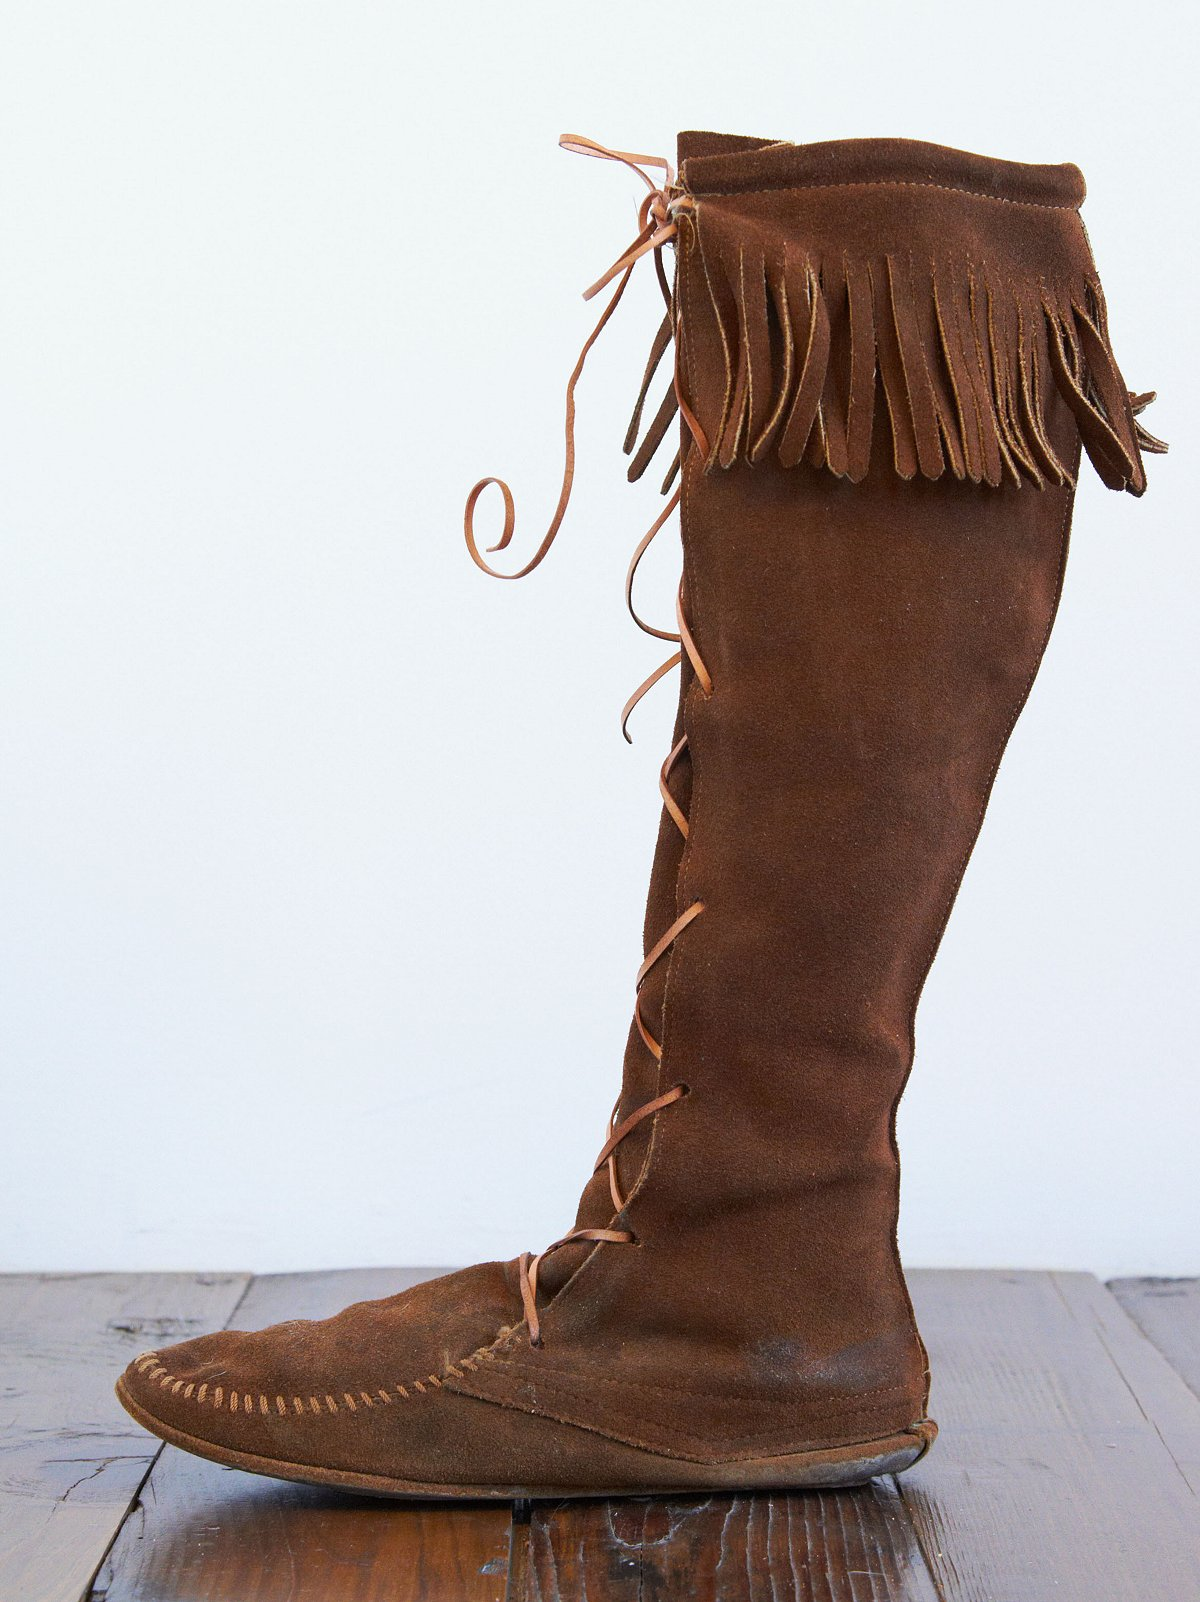 Vintage Tall Moccasins